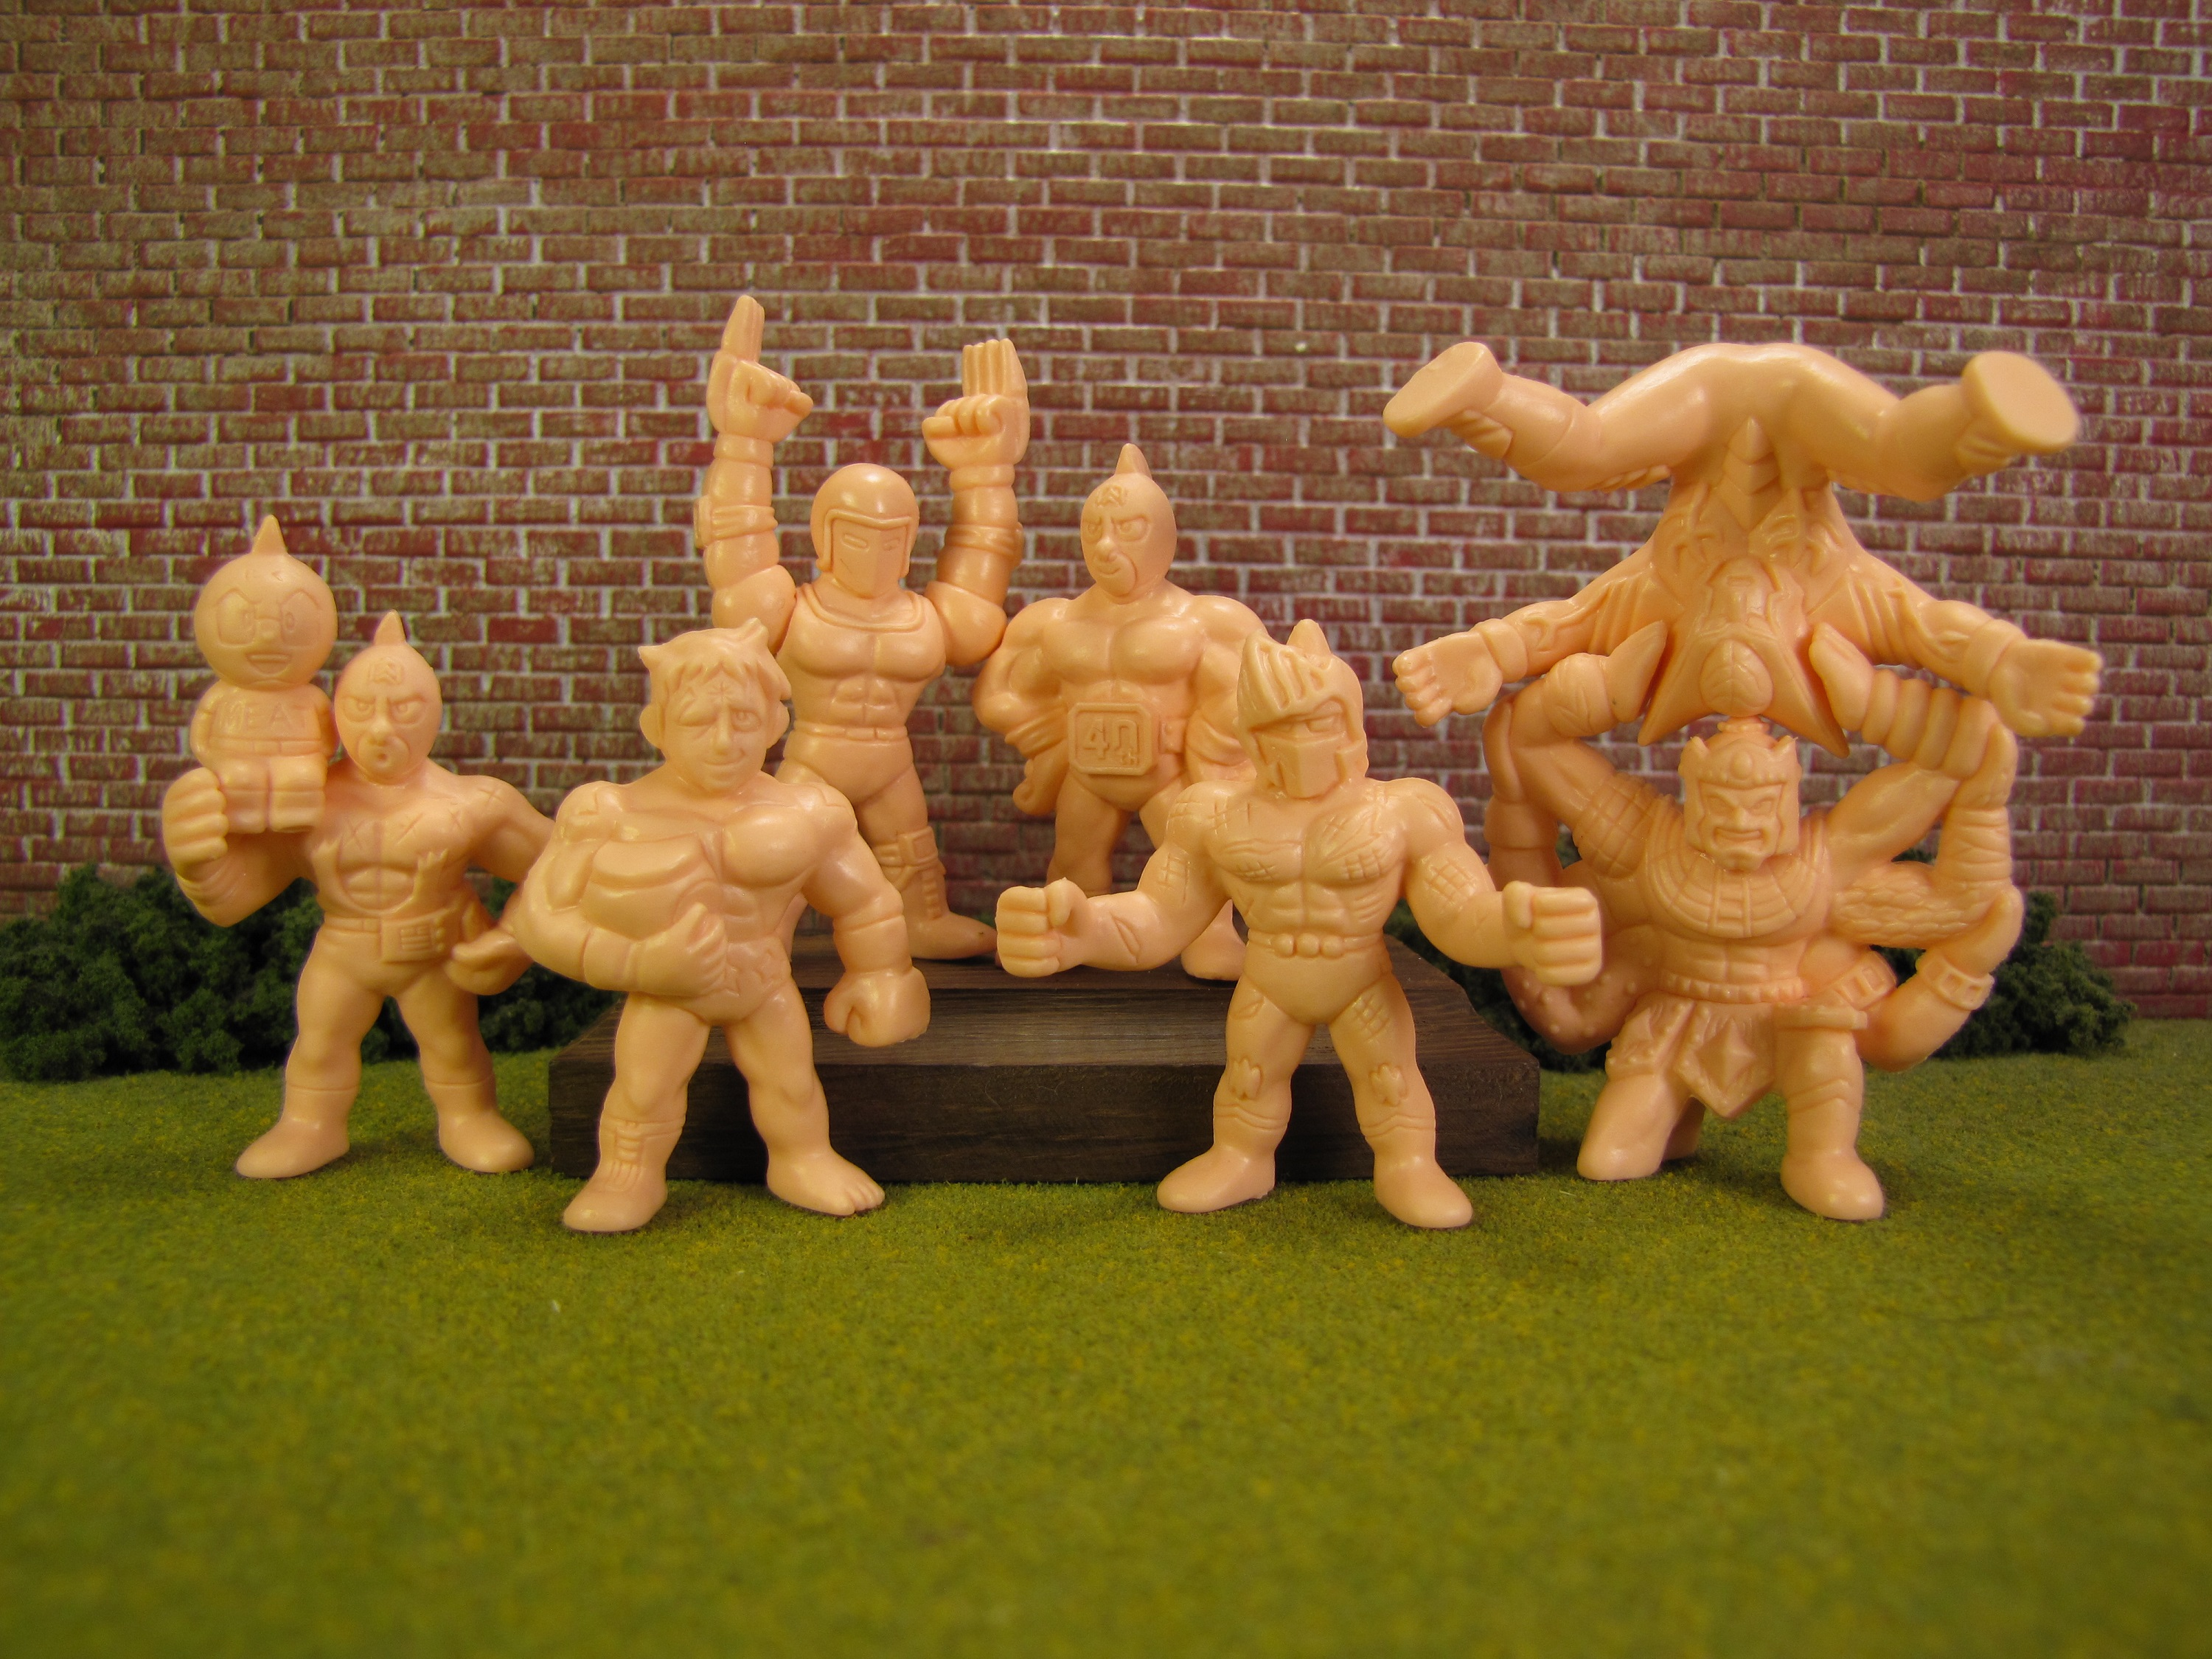 2002 Ultimate Muscle Kinnikuman Kinkeshi Gashapon Mini-Figurines CHOOSE